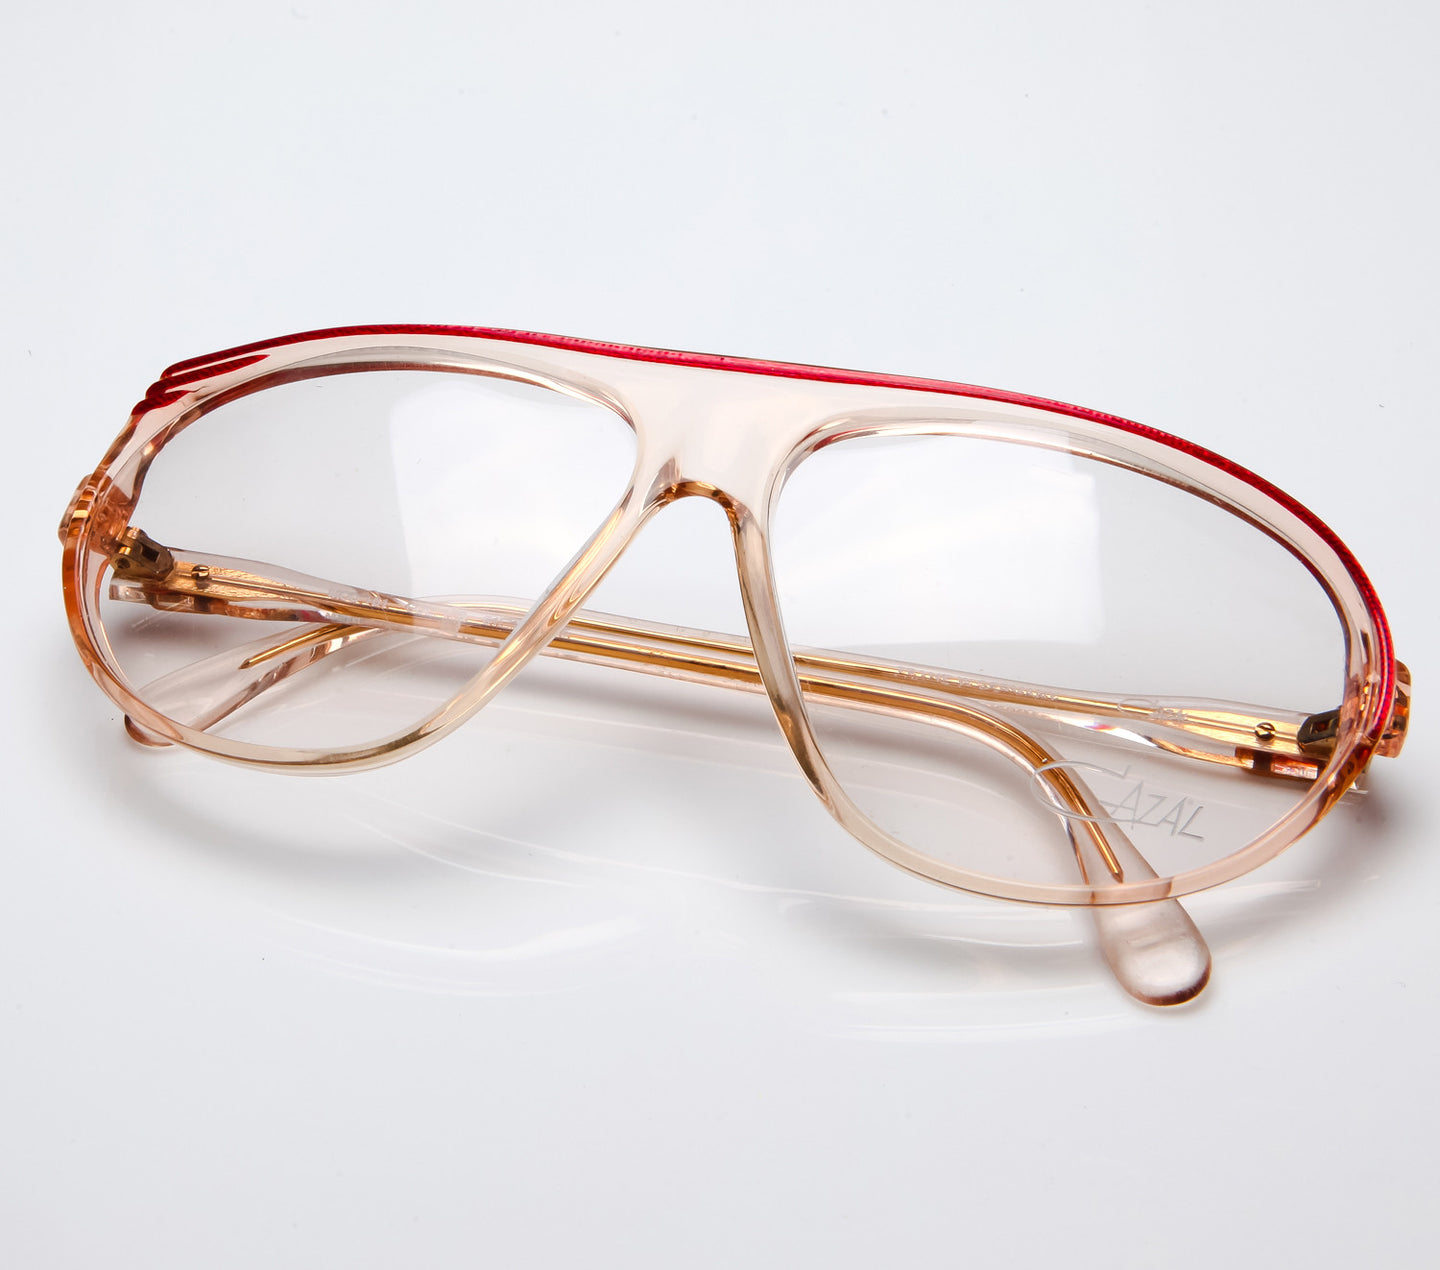 Cazal 161 178, Cazal , glasses frames, eyeglasses online, eyeglass frames, mens glasses, womens glasses, buy glasses online, designer eyeglasses, vintage sunglasses, retro sunglasses, vintage glasses, sunglass, eyeglass, glasses, lens, vintage frames company, vf